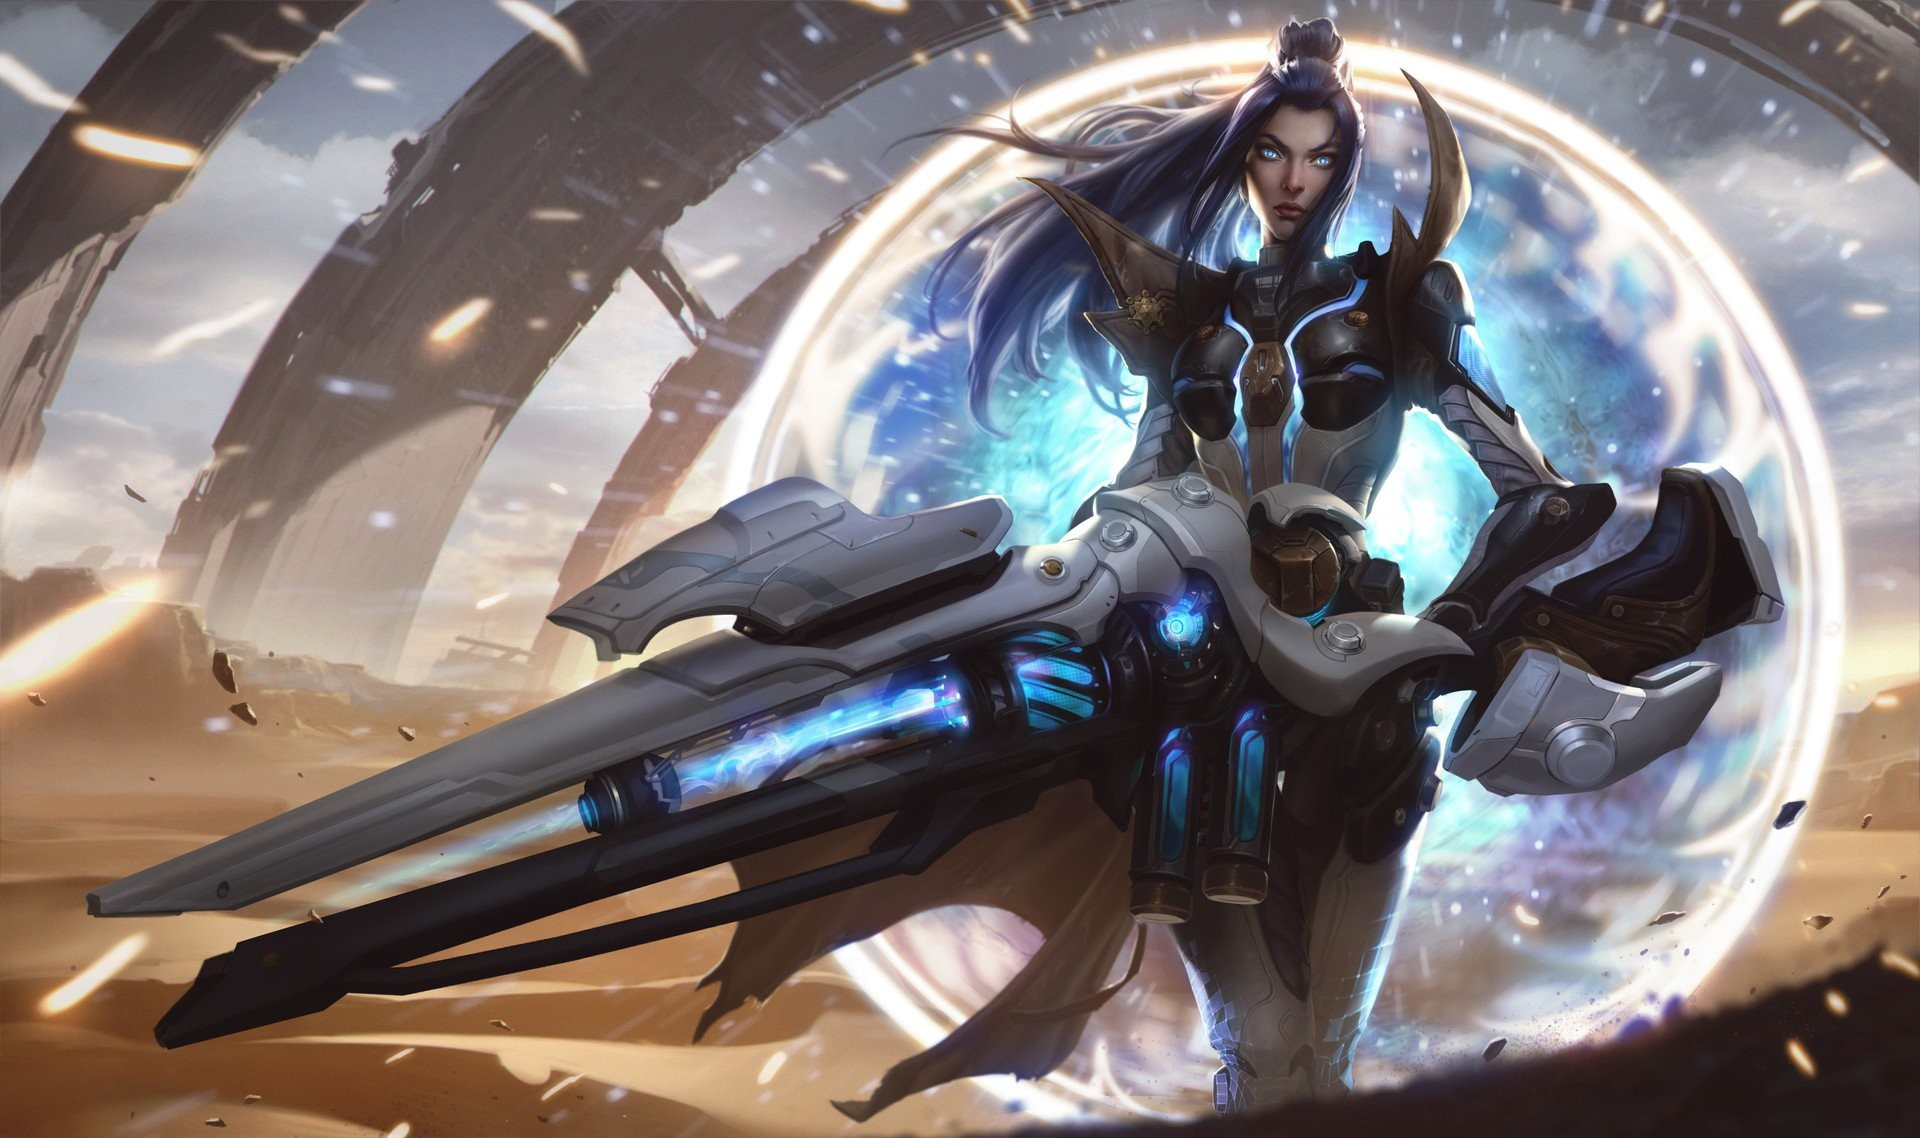 Res: 1920x1138, warrior caitlyn league of legends fantasy art armor futuristic summoners  rift wallpaper and background